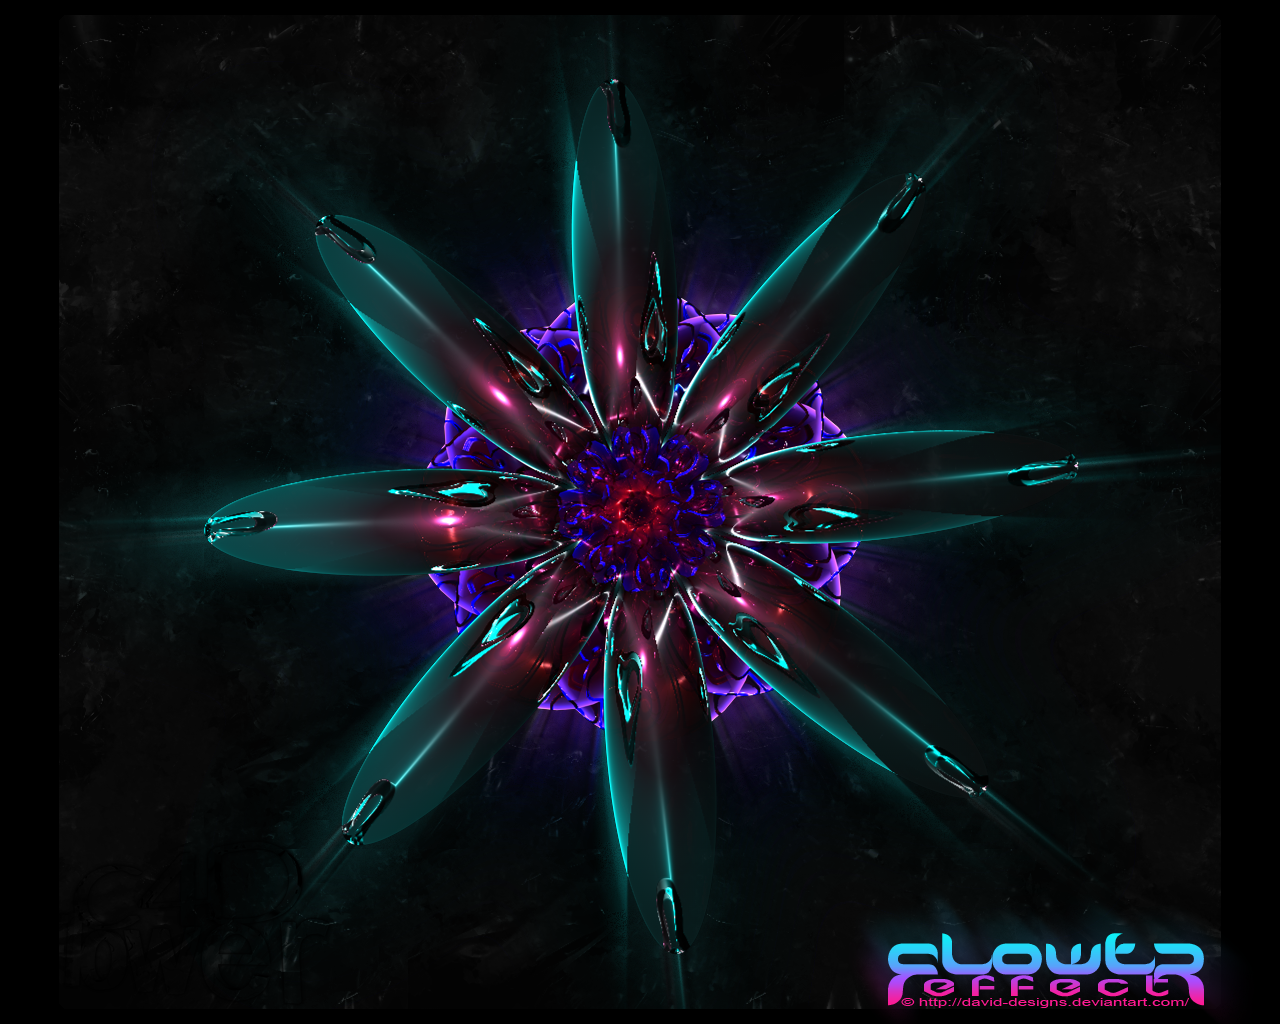 Flower C4D Effect by david-designs on DeviantArt